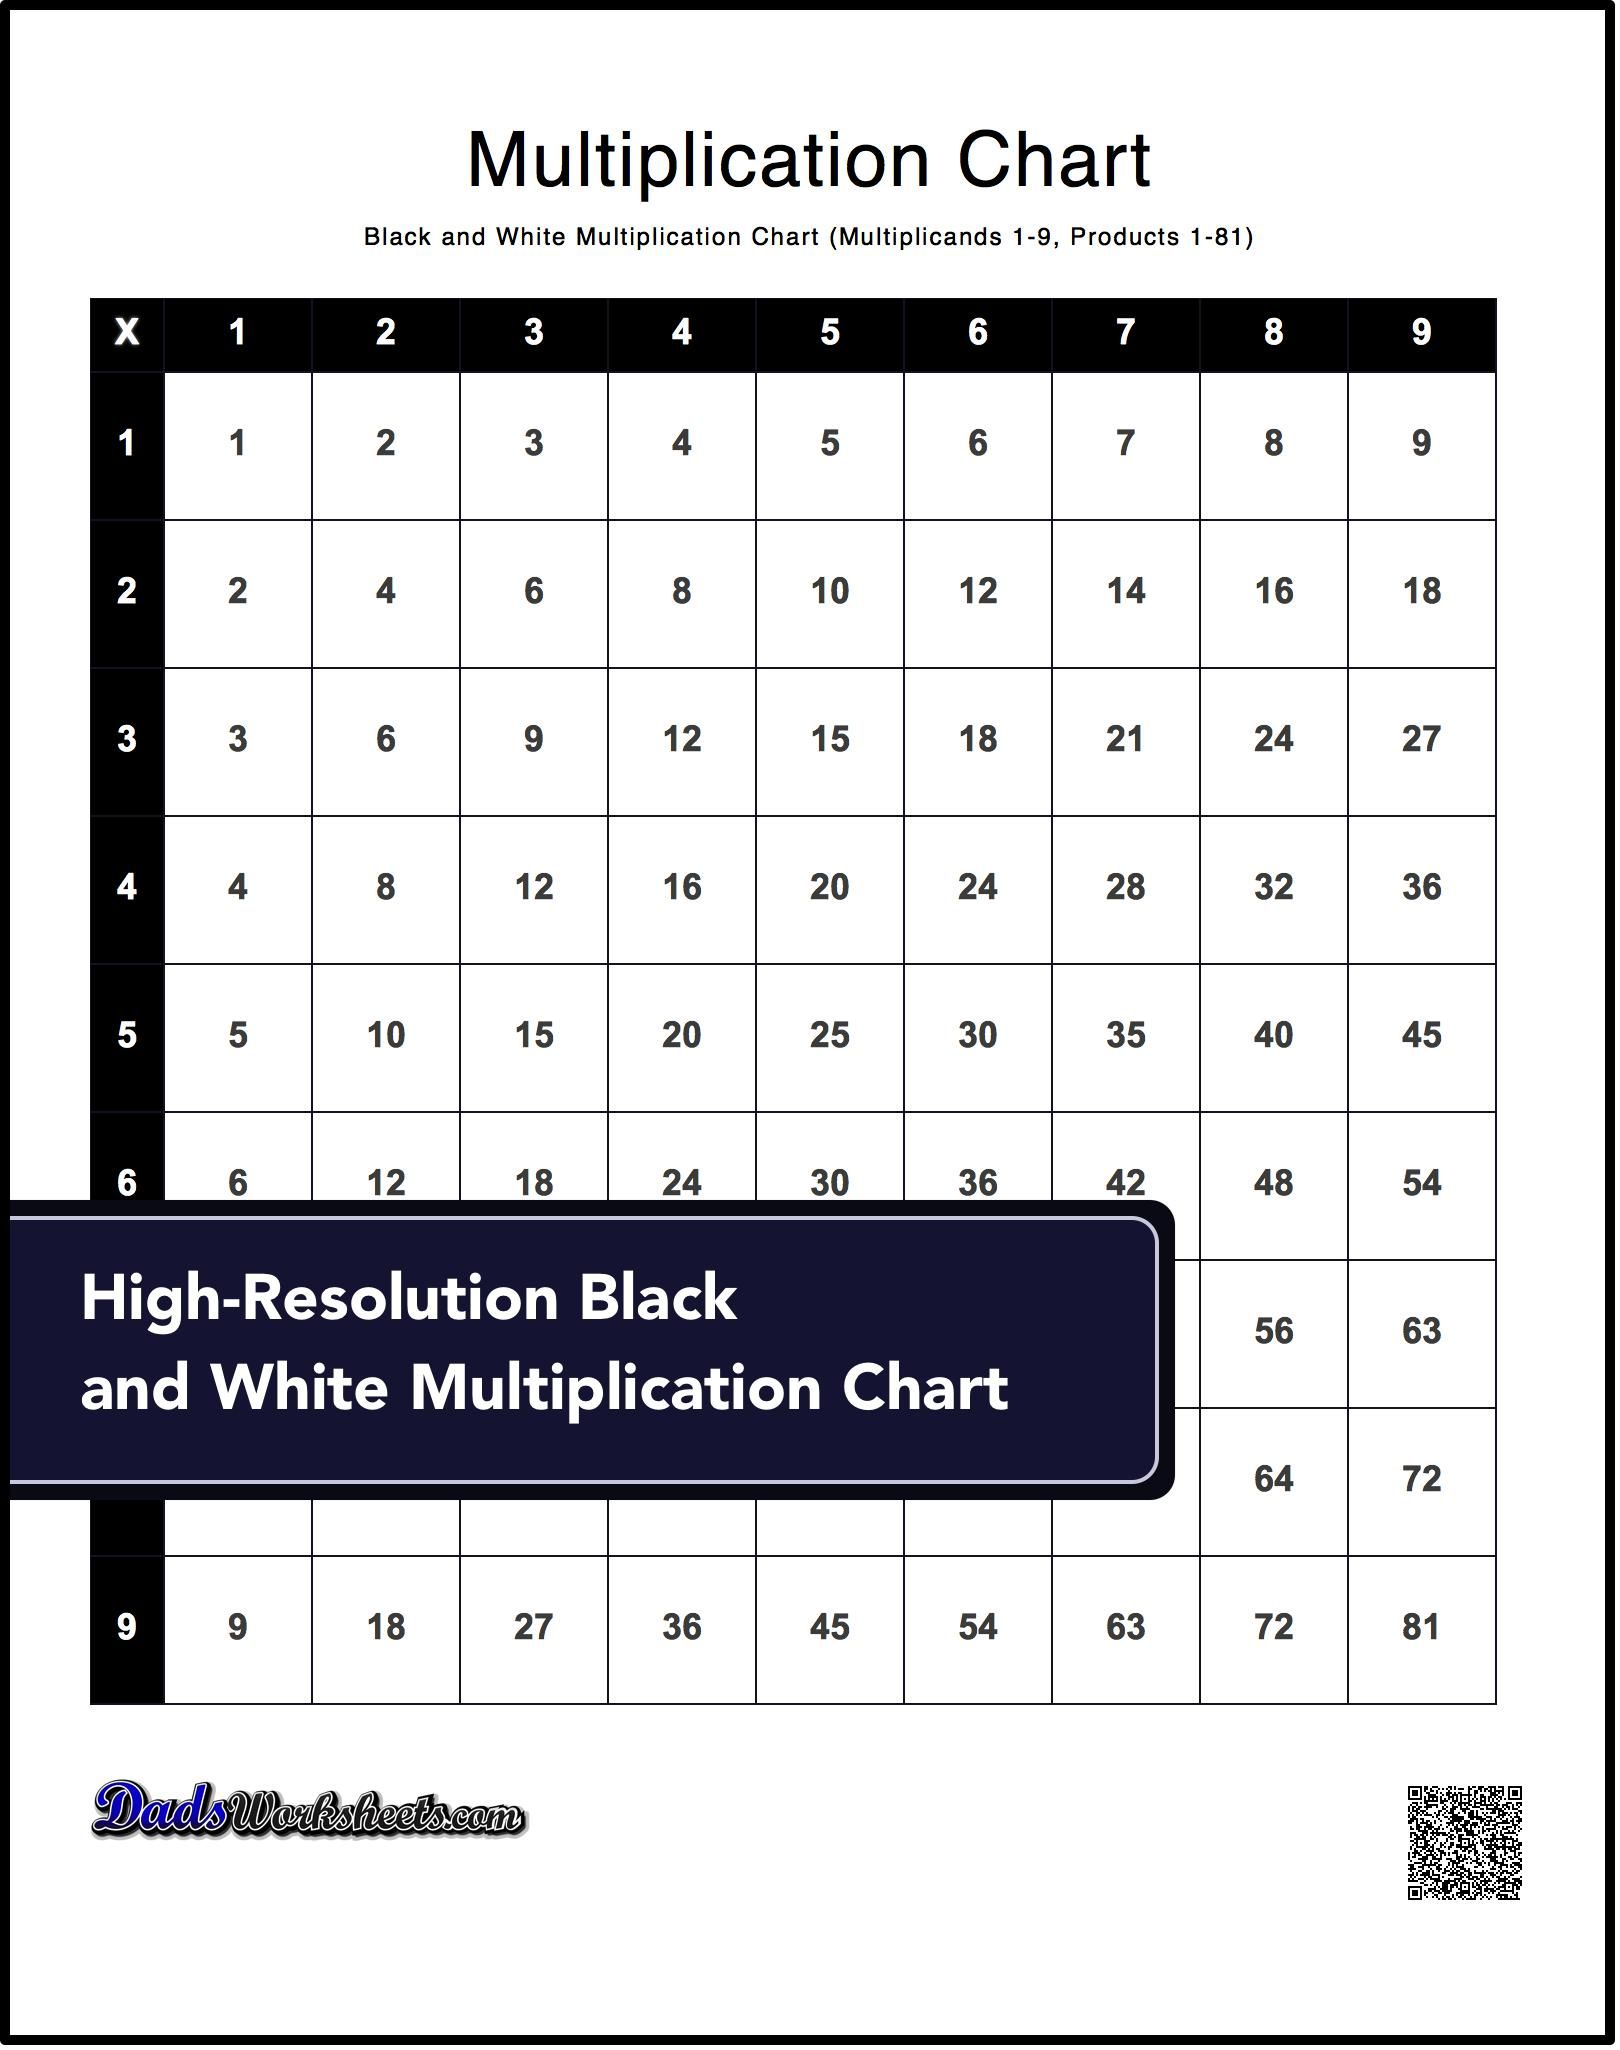 Multiplication Chart For High Resolution Black And White